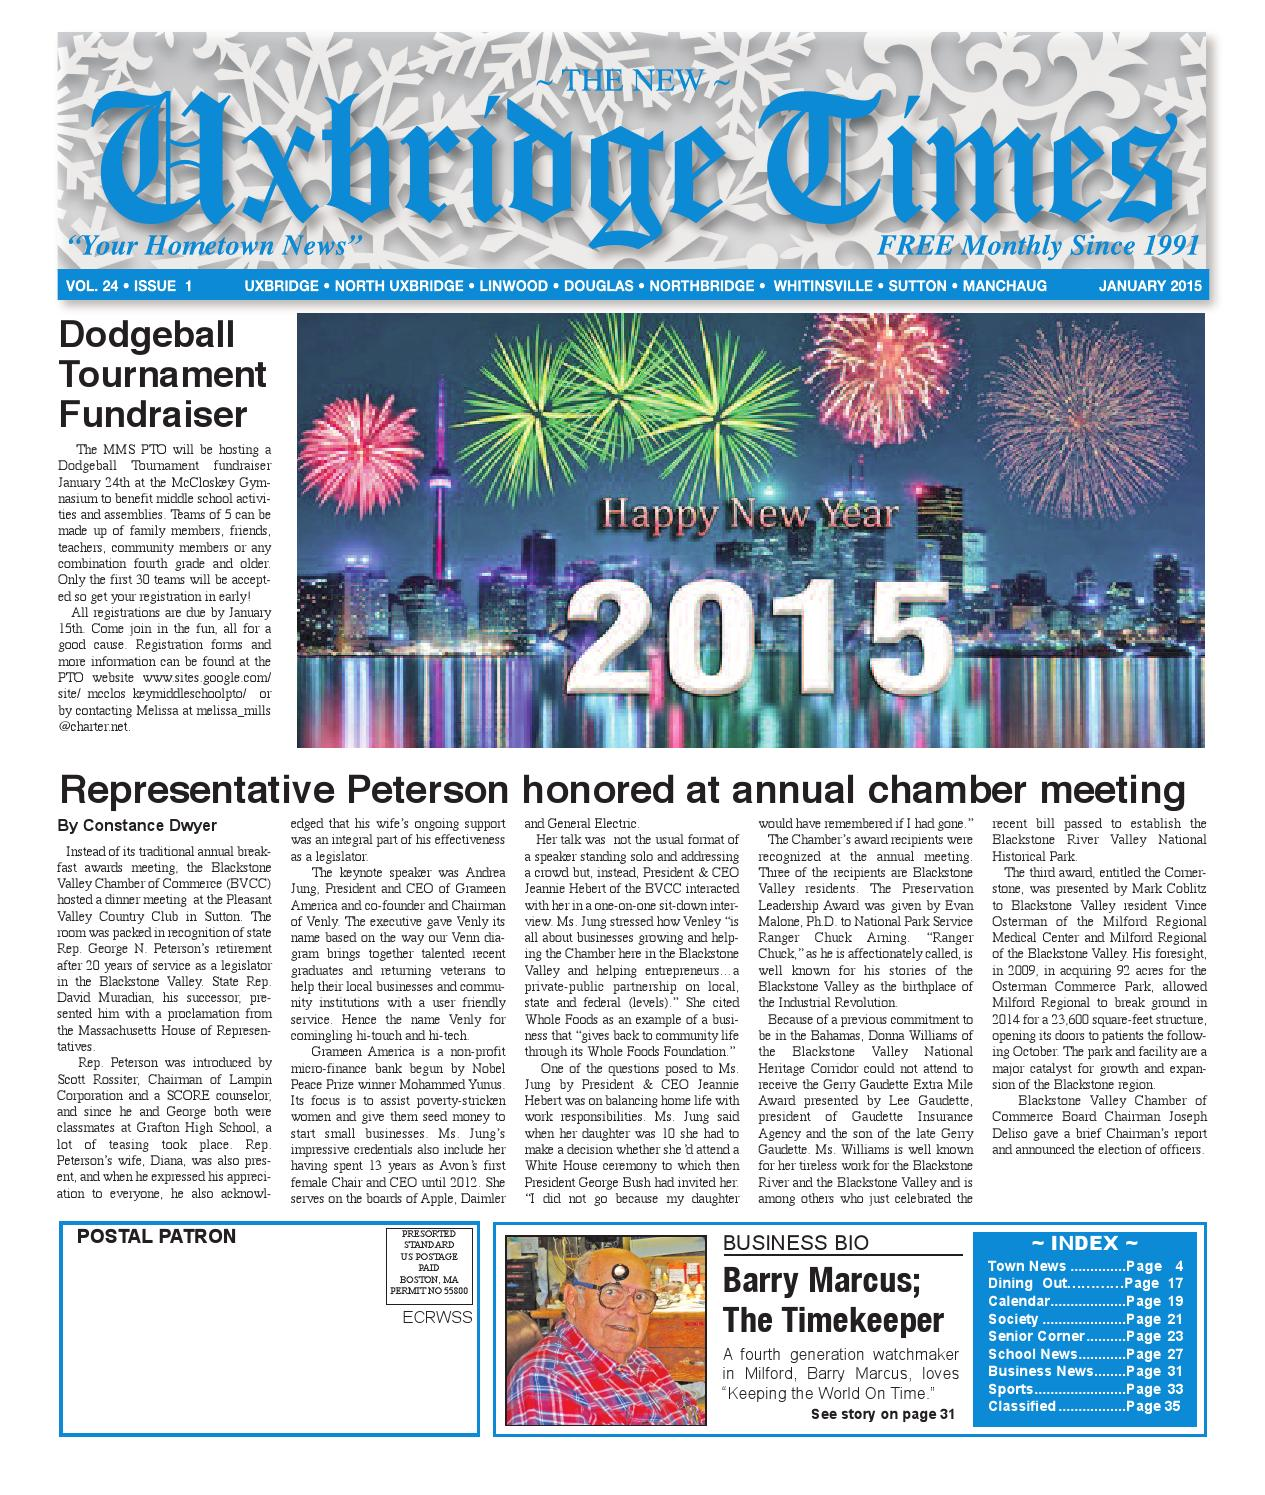 The New Uxbridge Times - January, 2015 by The New Uxbridge Times - issuu